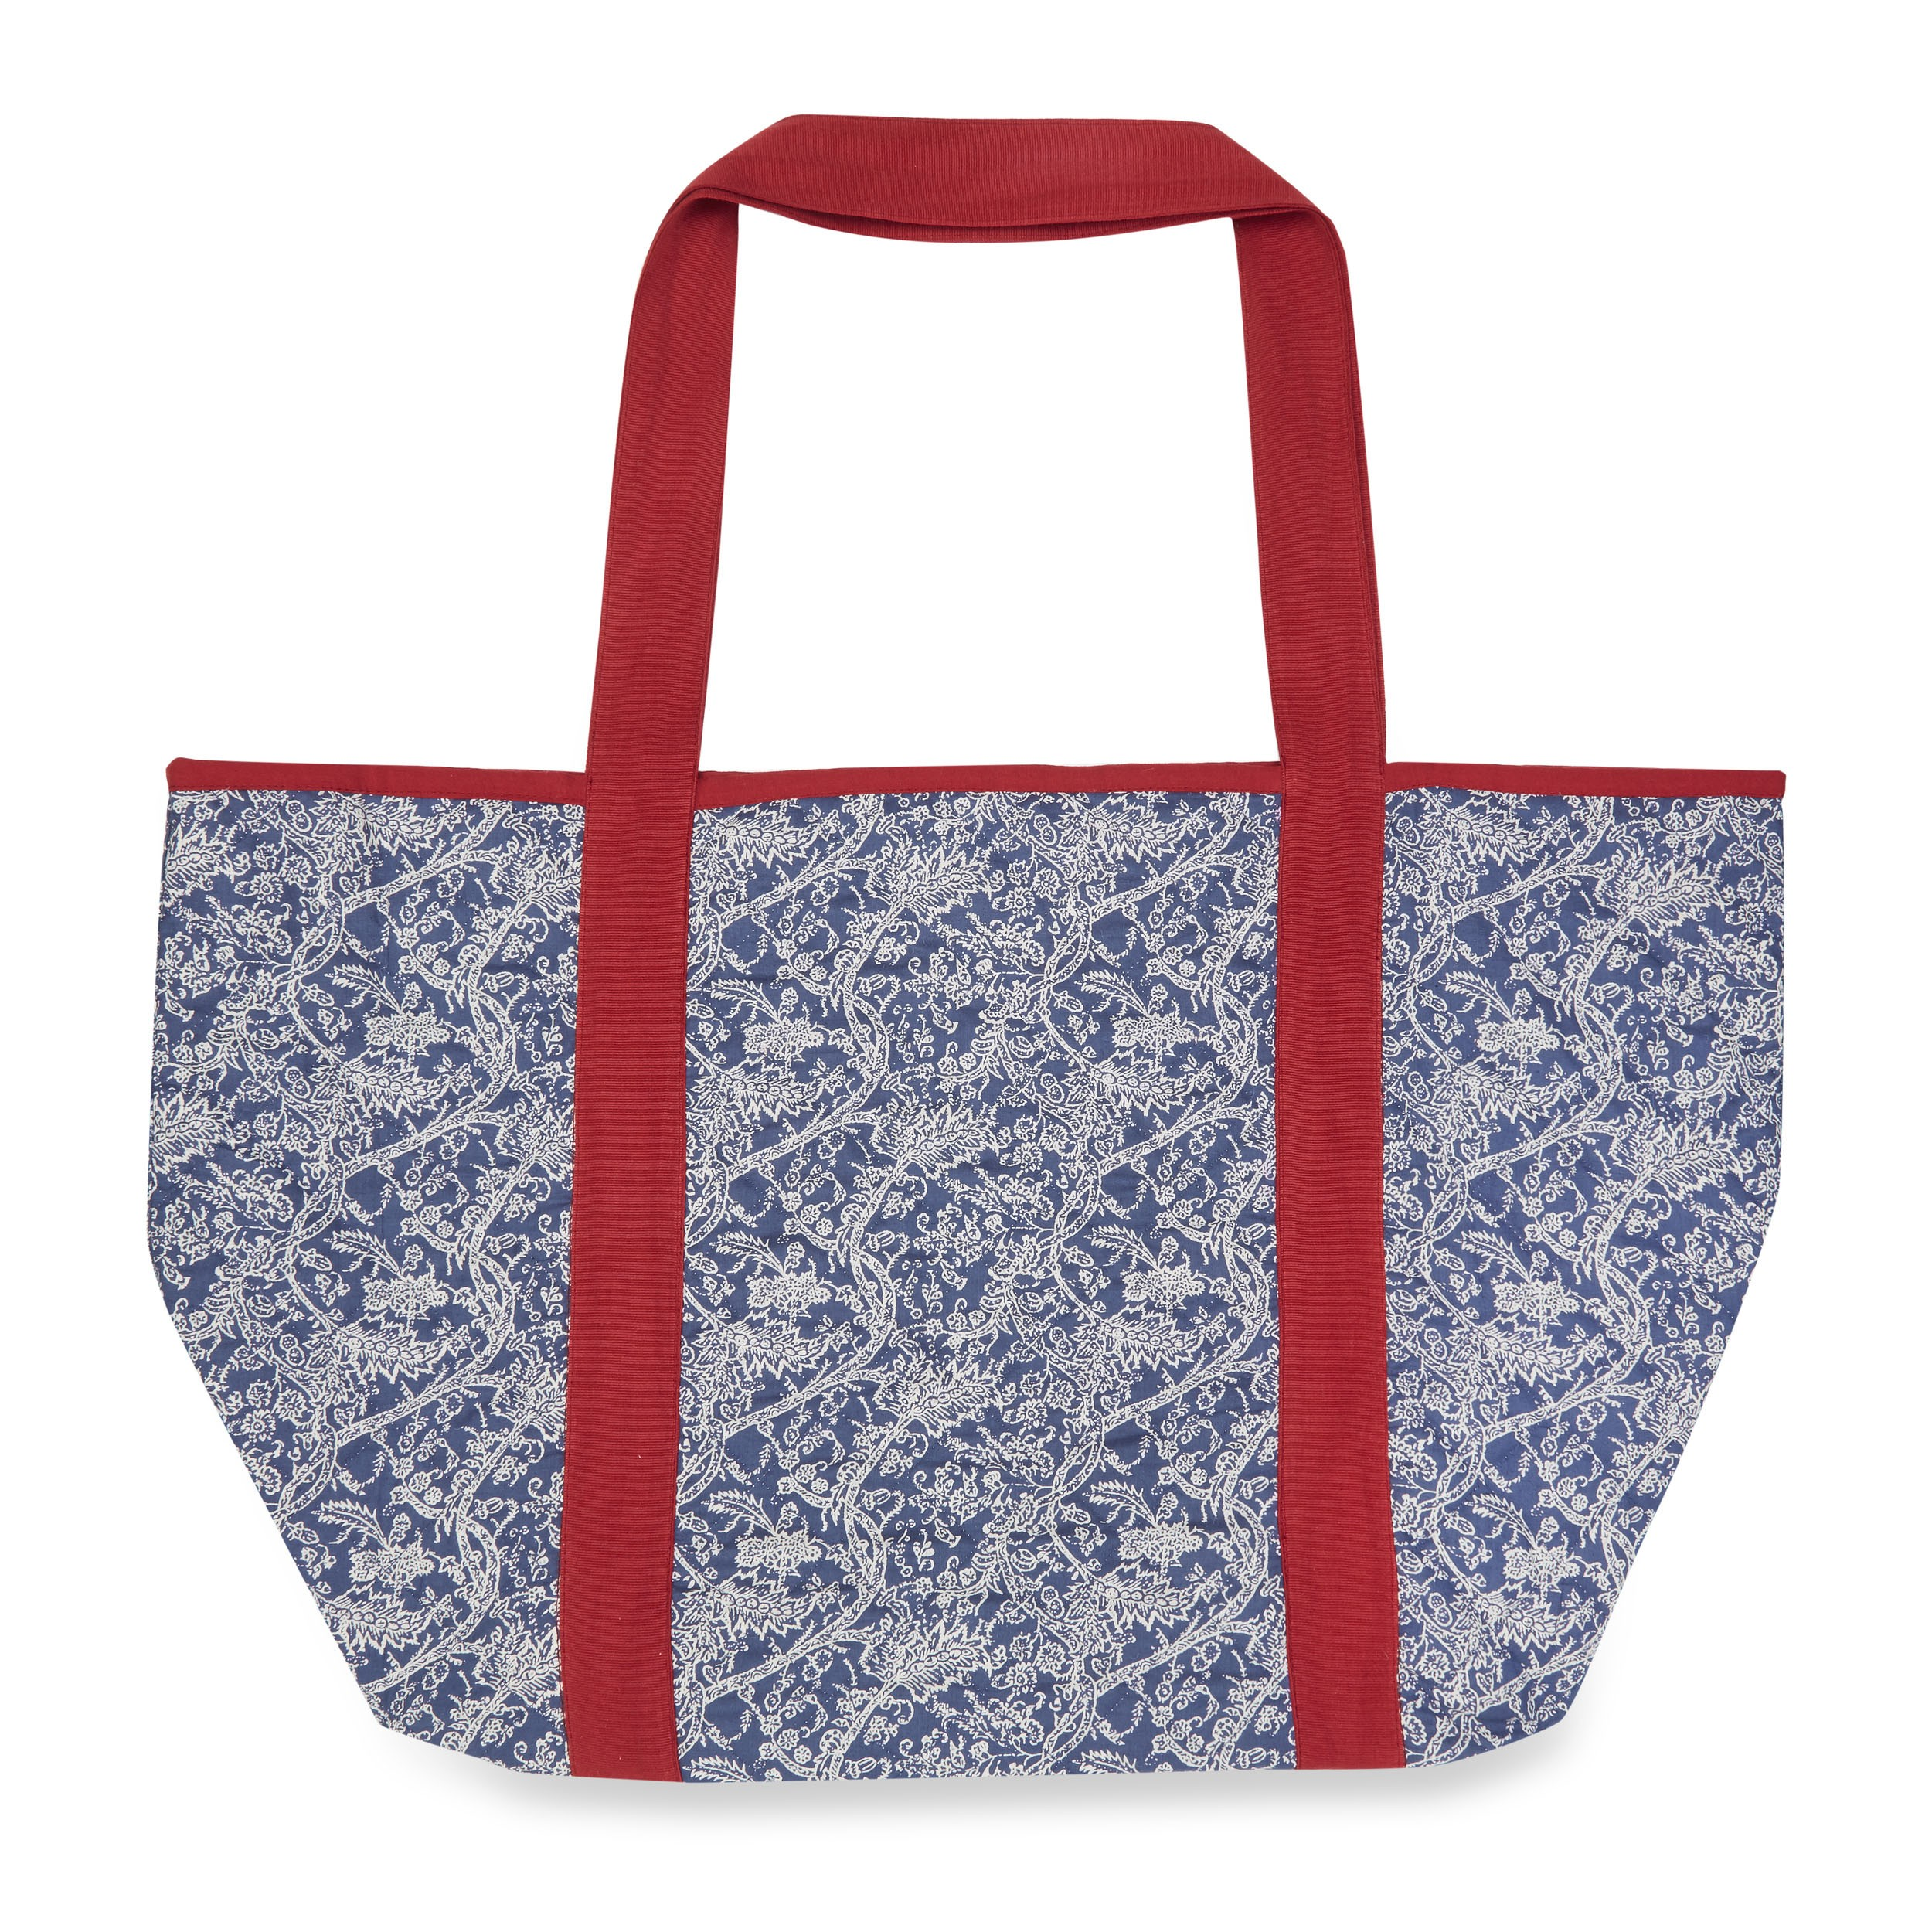 2adef6515 Comprar bolso shopper reversible Toile de diseño - Laura Ashley Decoracion